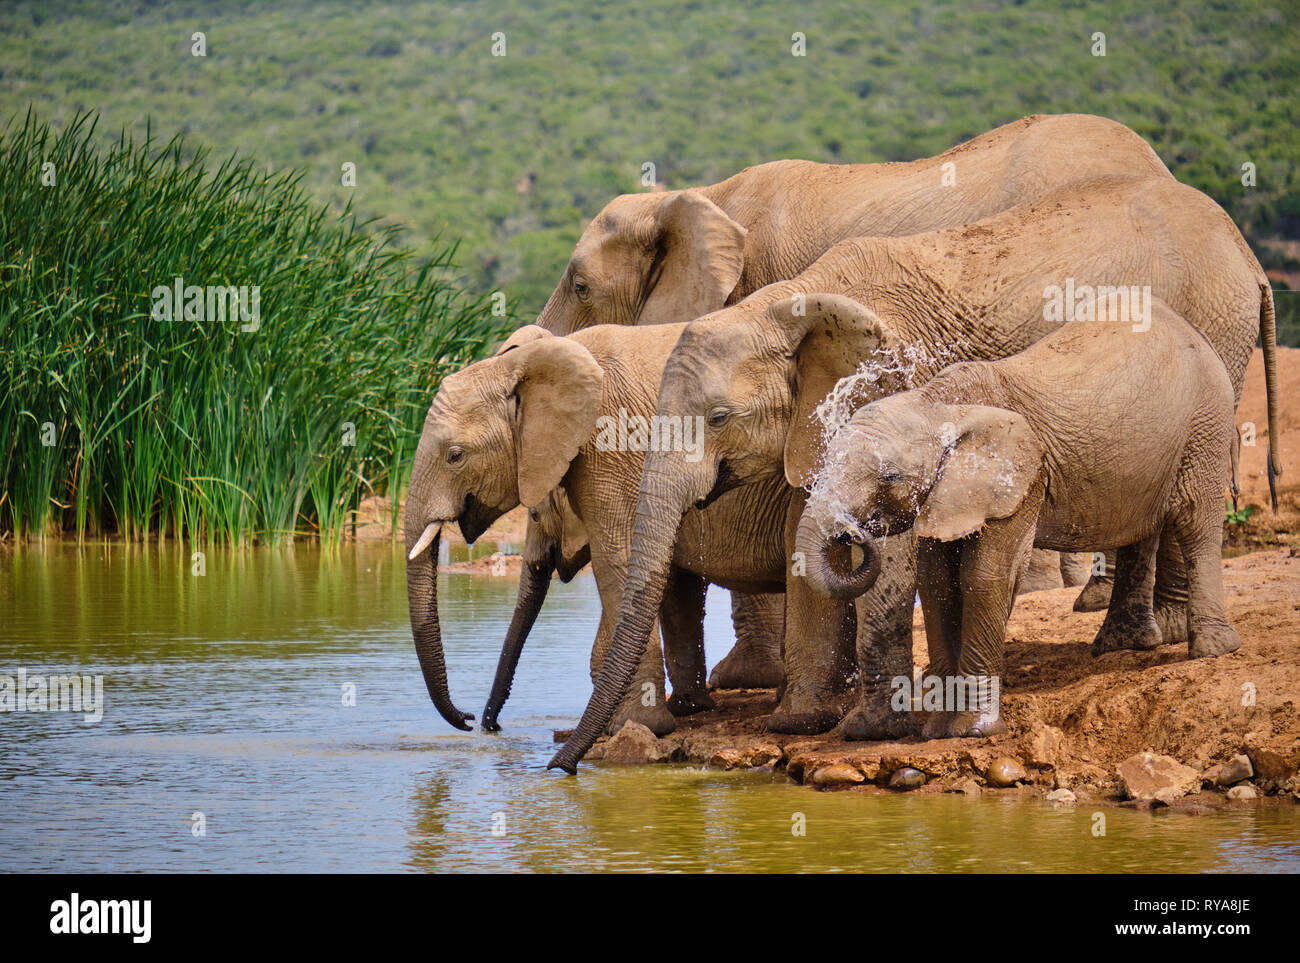 family-of-five-african-elephant-drinking-playfully-at-water-hole-various-ages-baby-spraying-itself-RYA8JE.jpg